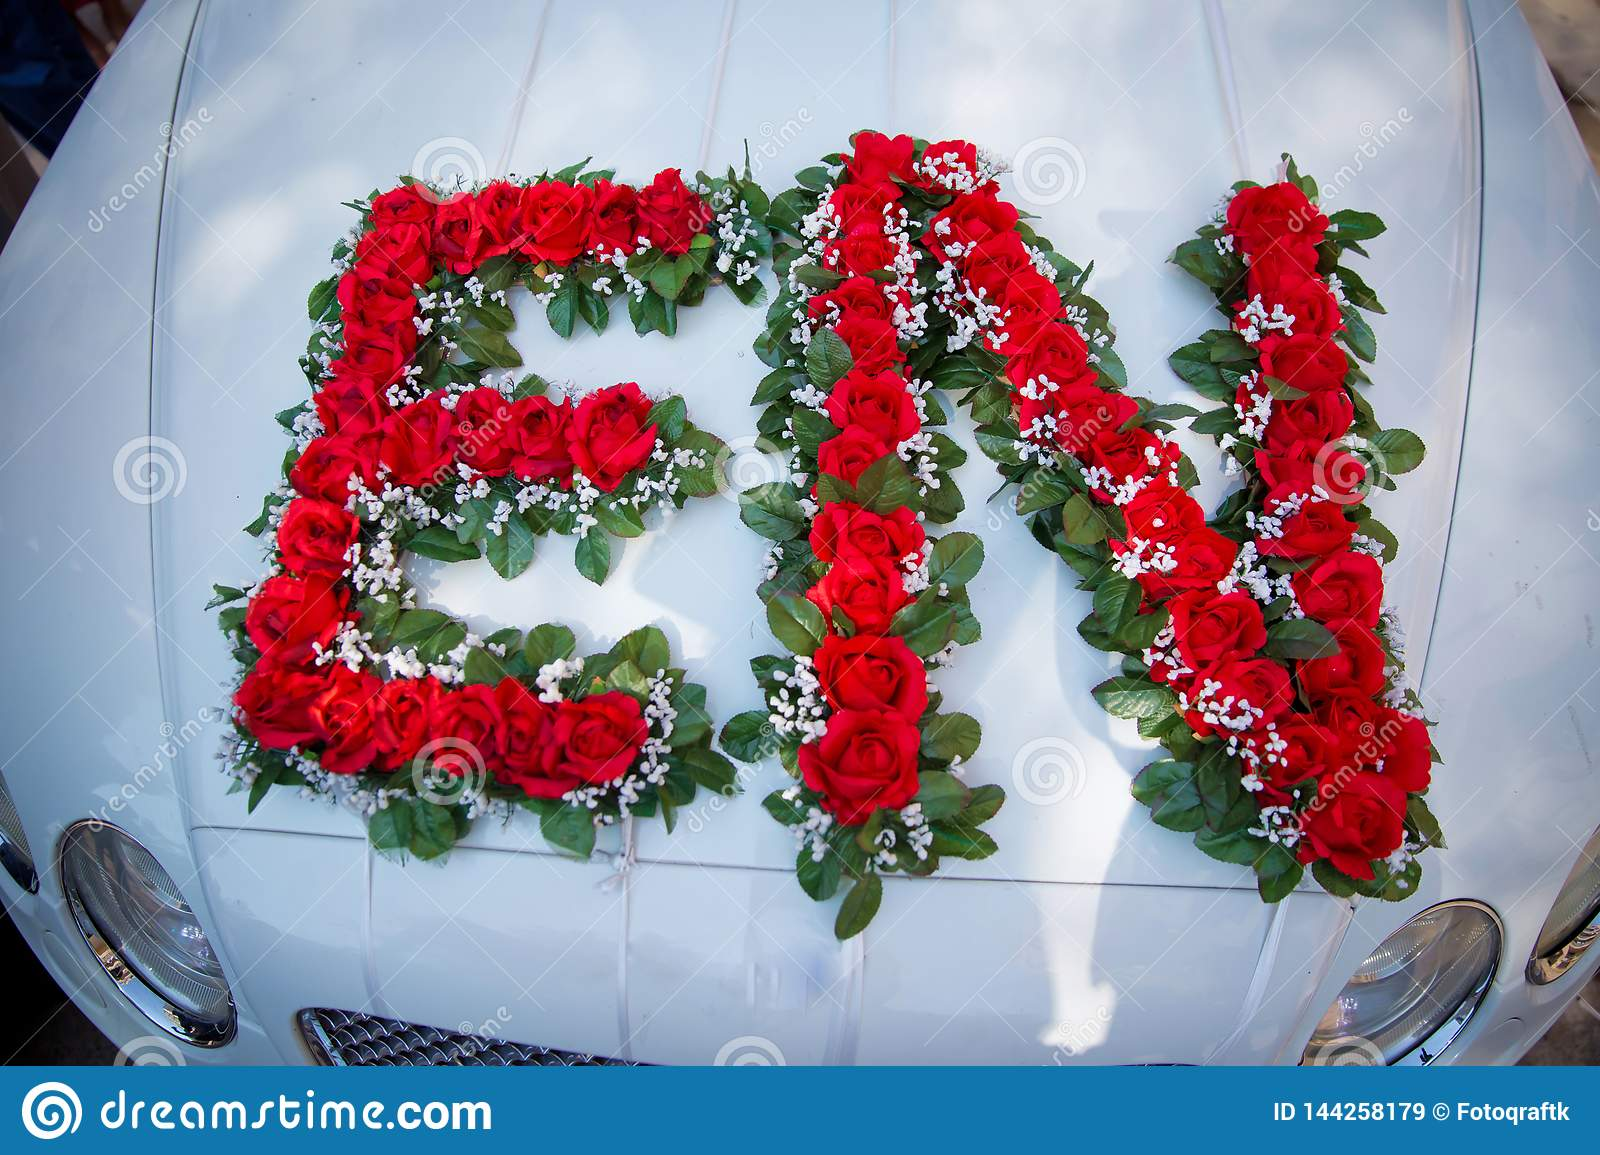 Closeup Image Of Wedding Car Decoration With Red And White